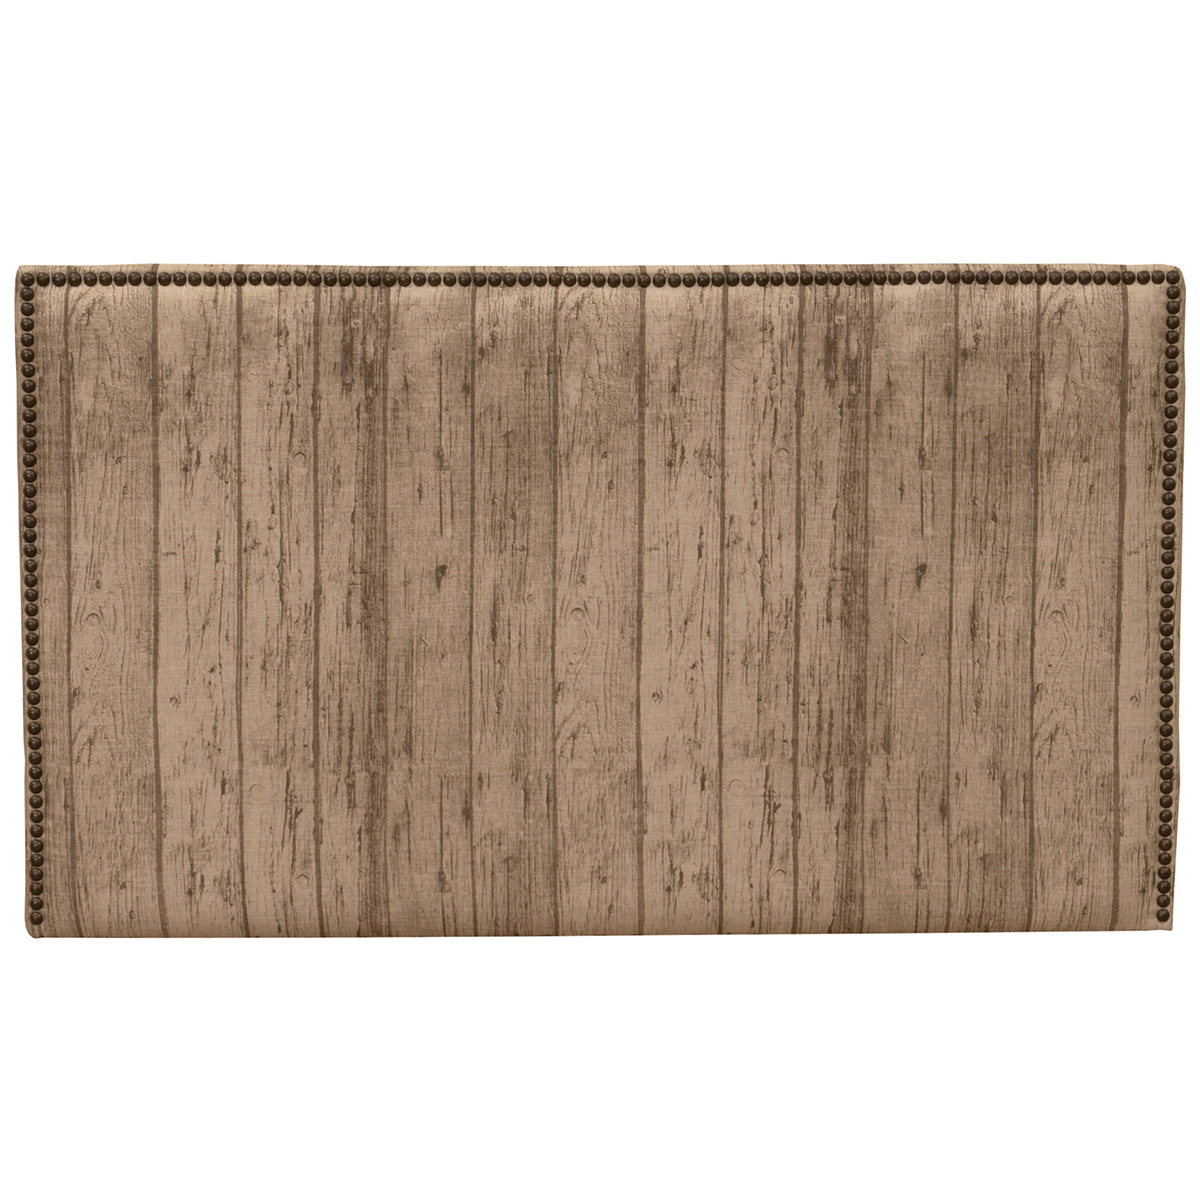 Highland Wood Plank Fabric Headboard - Queen